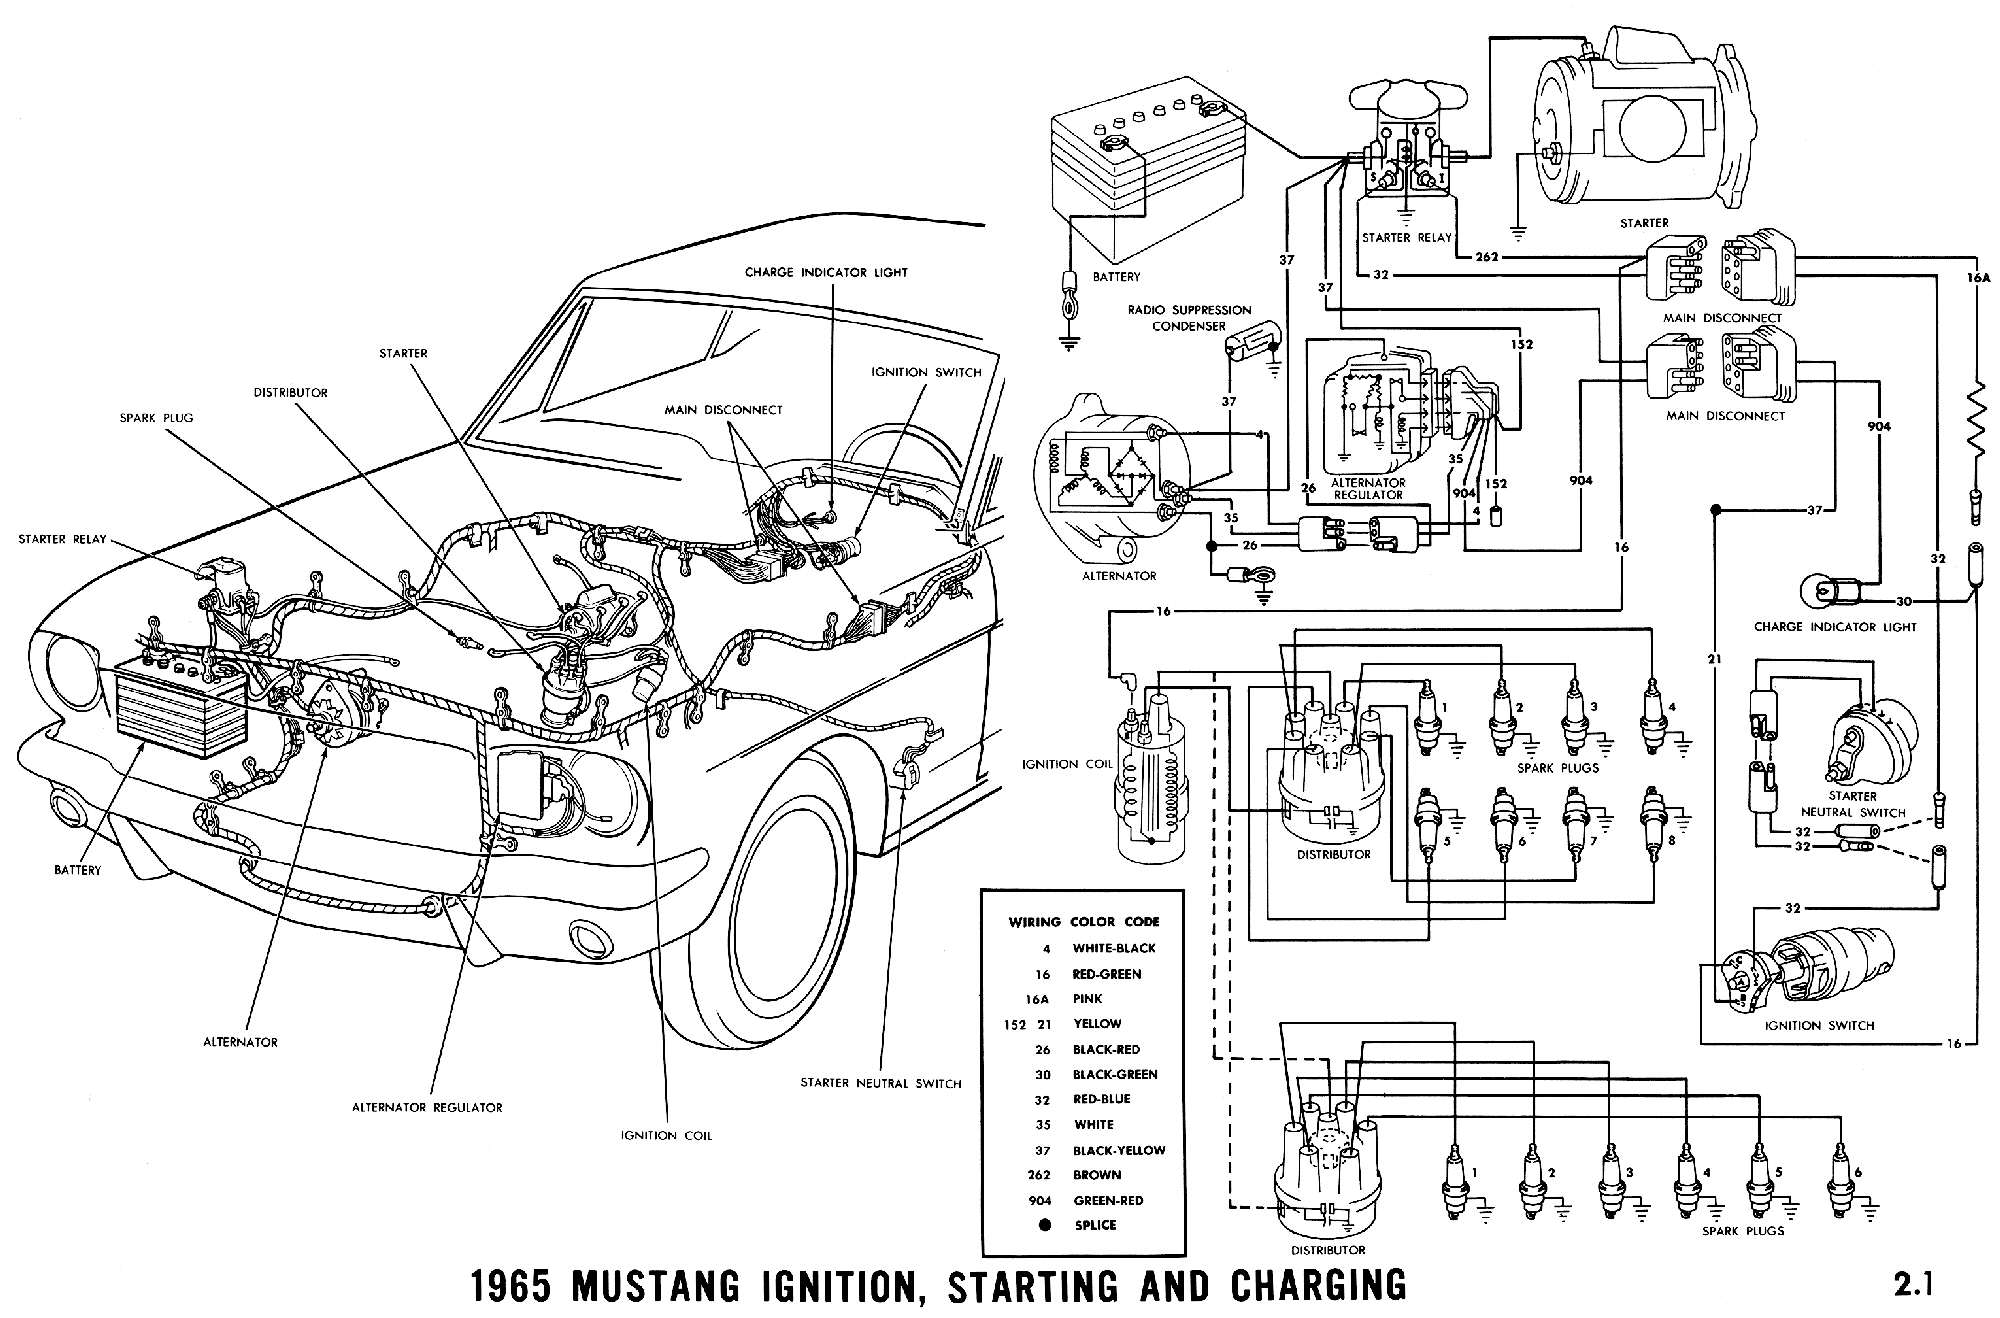 Ford Mustang Wiring Diagram Detailed Schematics 1997 Engine 1965 Diagrams Average Joe Restoration Harness Ignition Starting